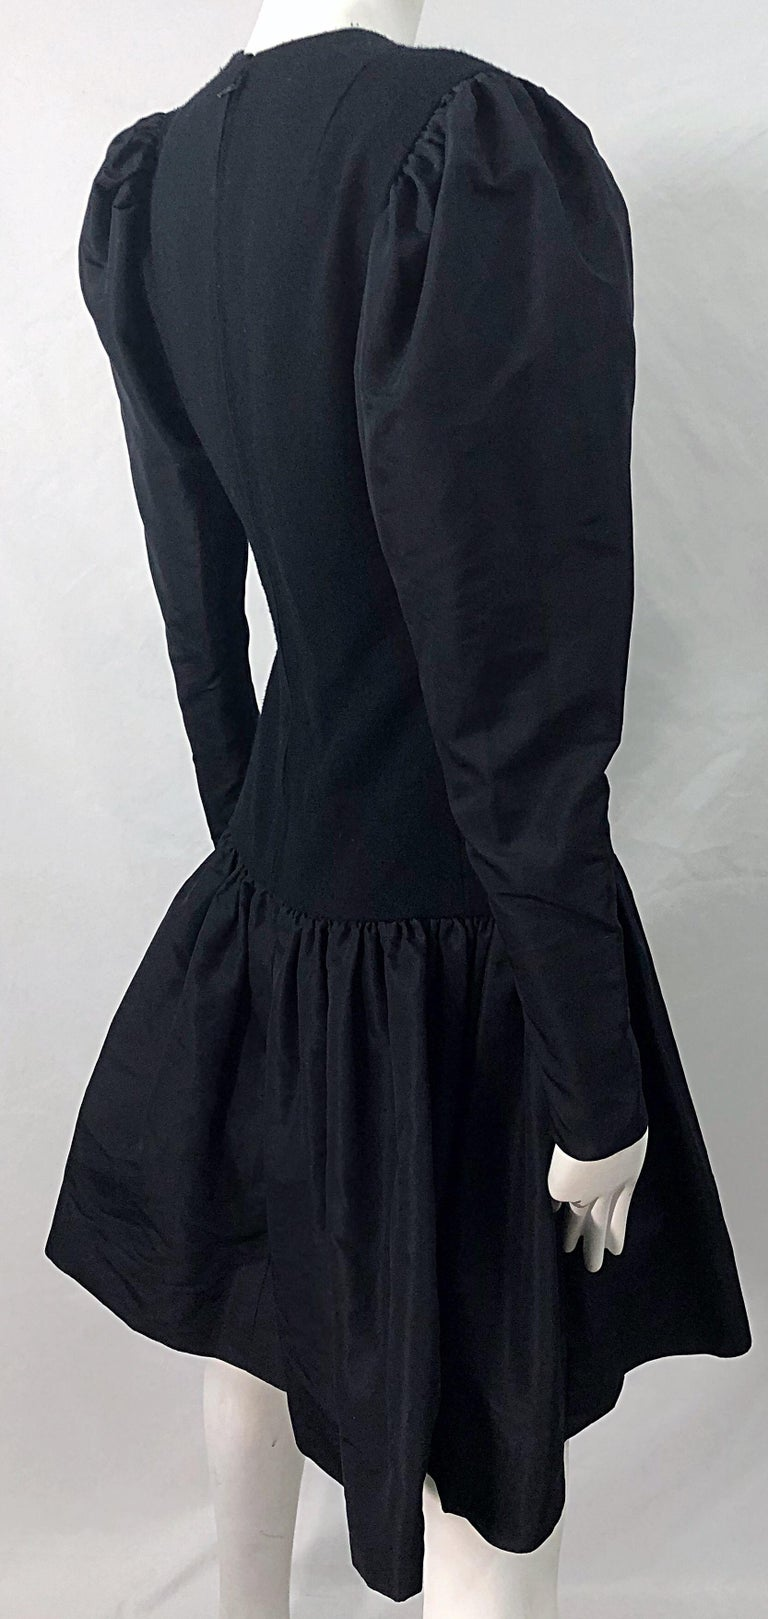 1980s Pauline Trigere Black Wool Silk Taffeta Avant Garde Vintage 80s Dress For Sale 5